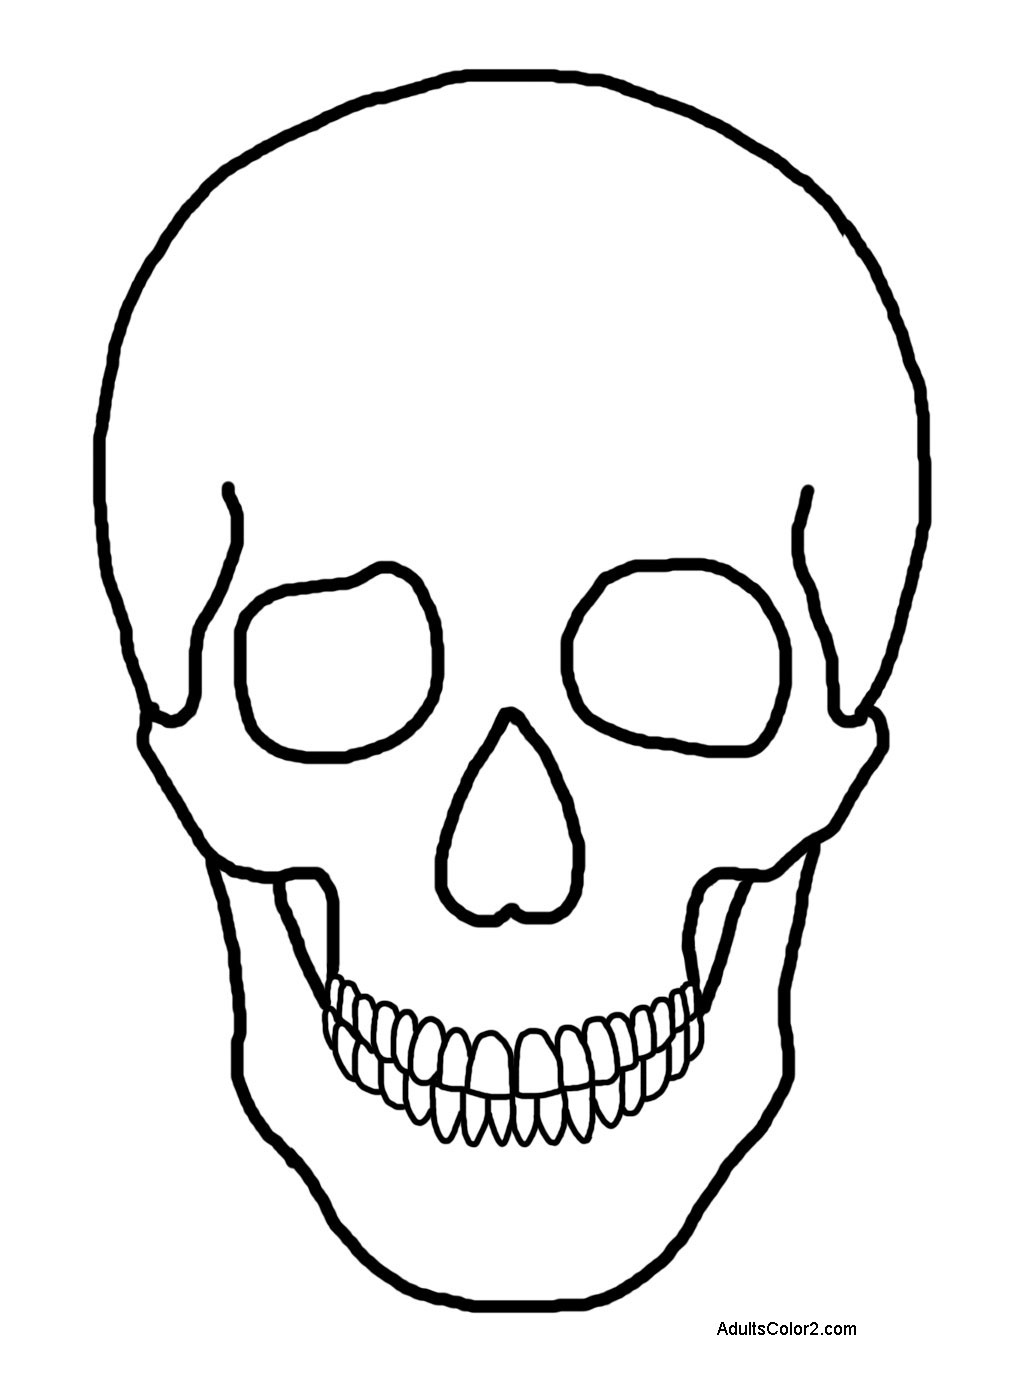 human head coloring pages - photo#5